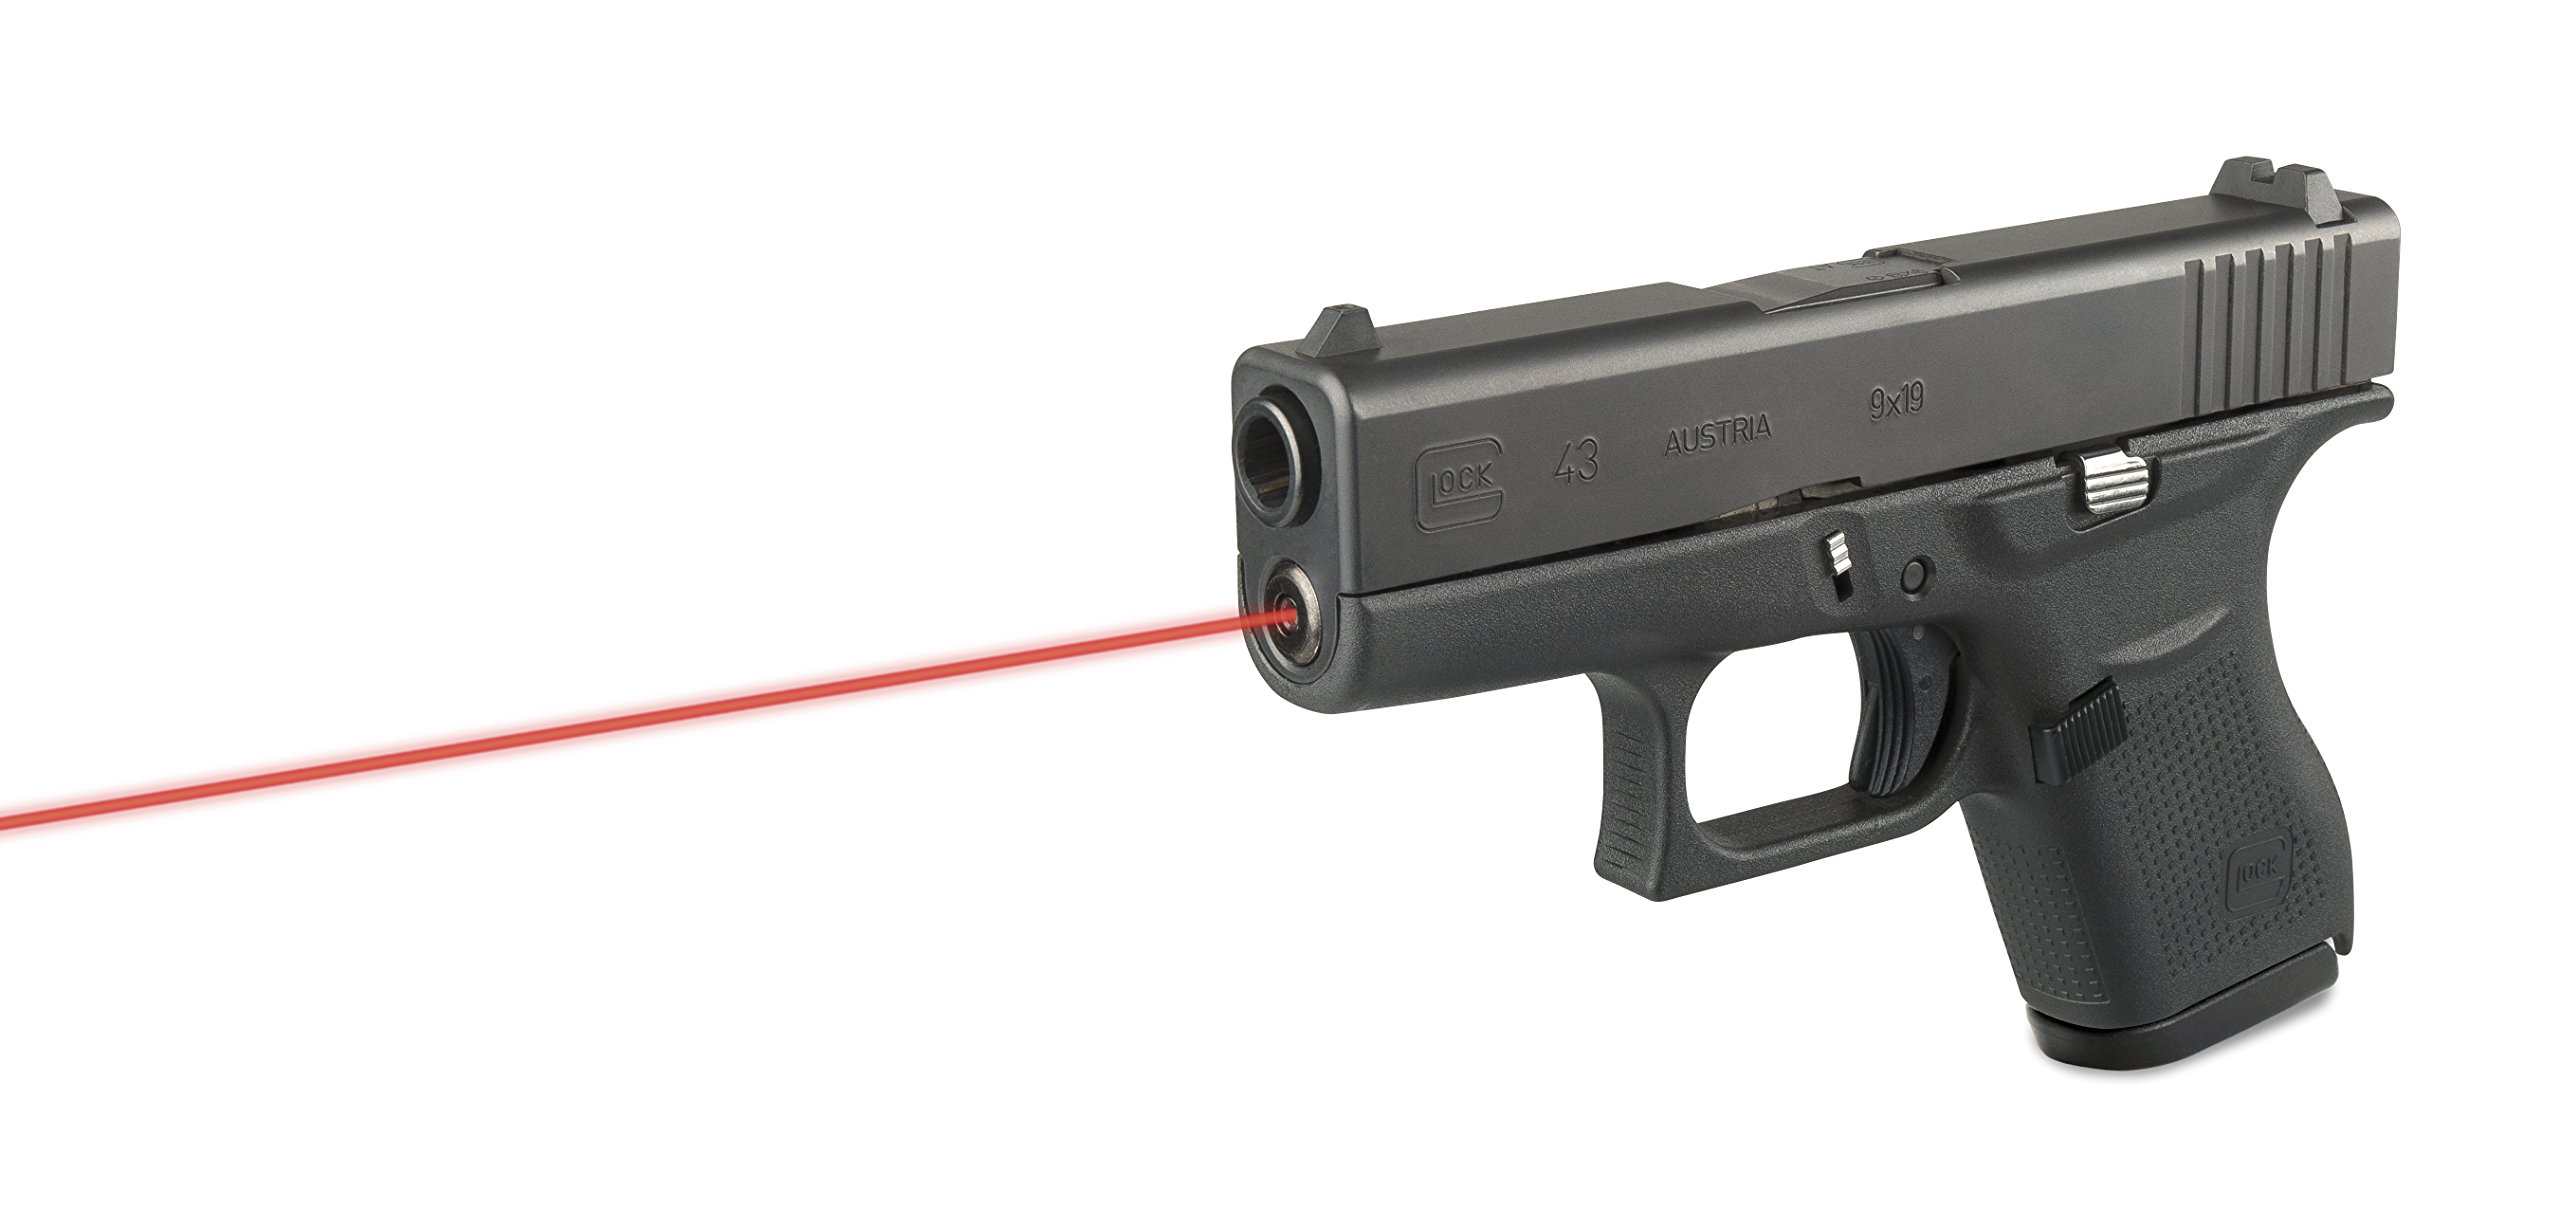 Guide Rod Laser (Red) For Glock 43 by LaserMax (Image #1)